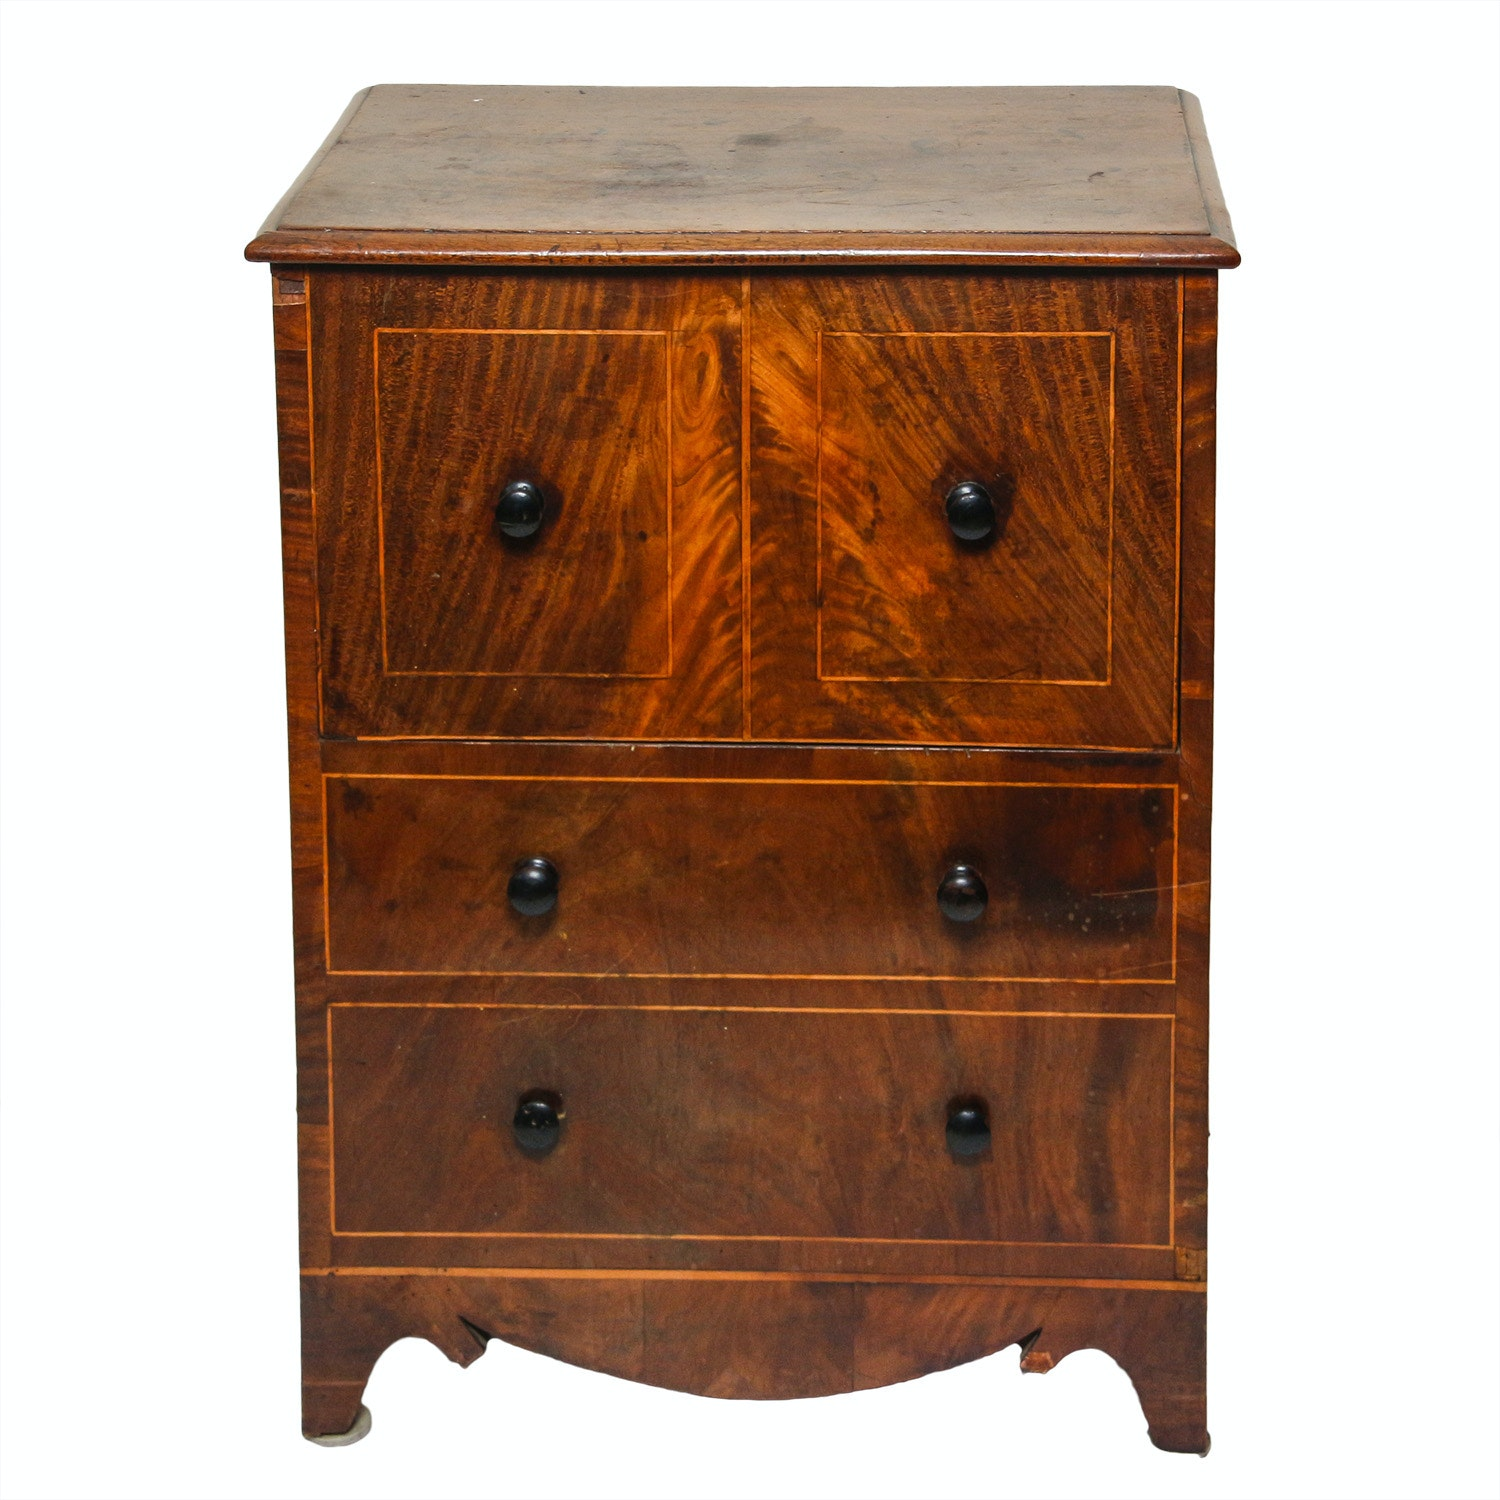 Antique Flame Veneered Commode Cabinet ...